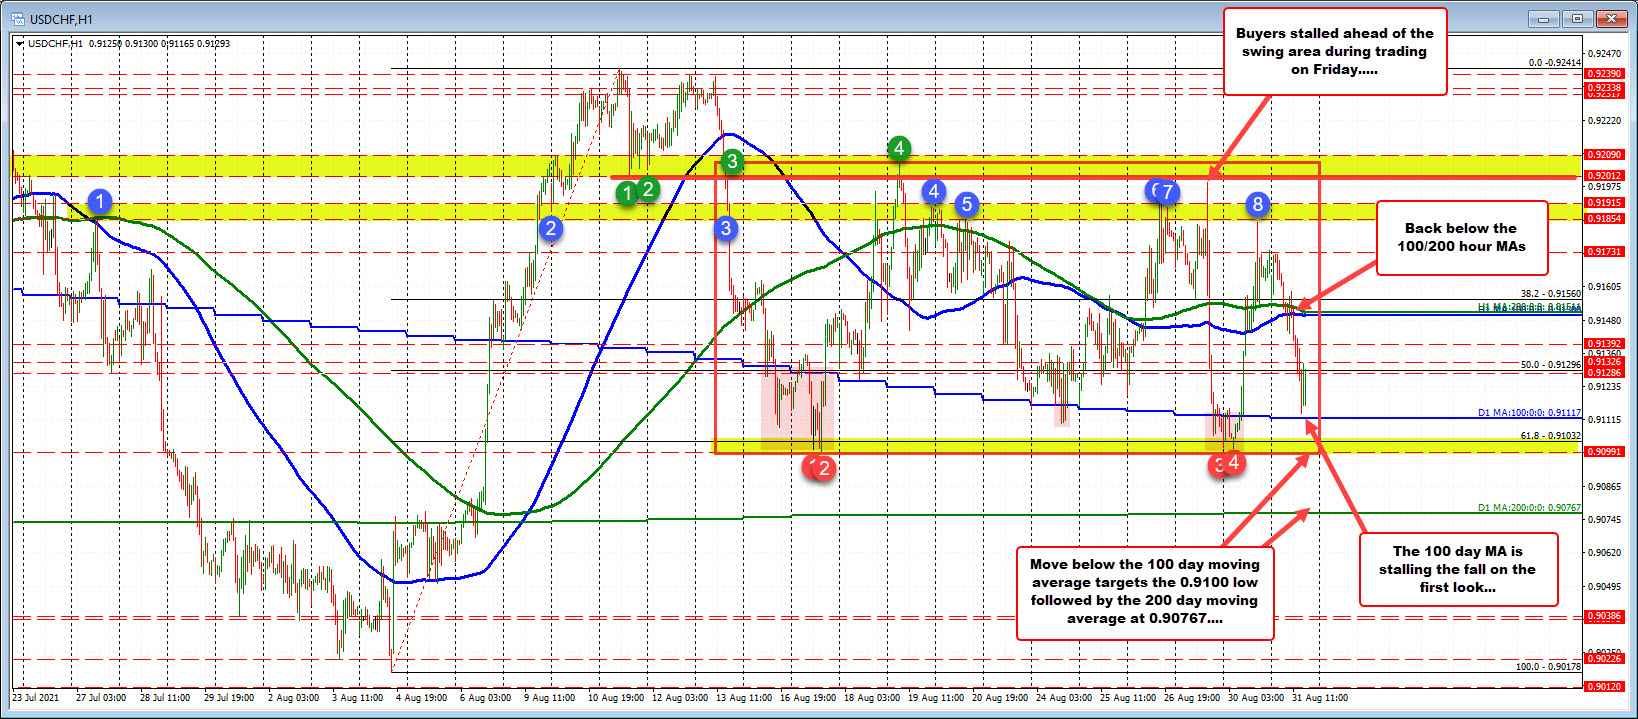 USDCHF falls down to test the 100 day MA level